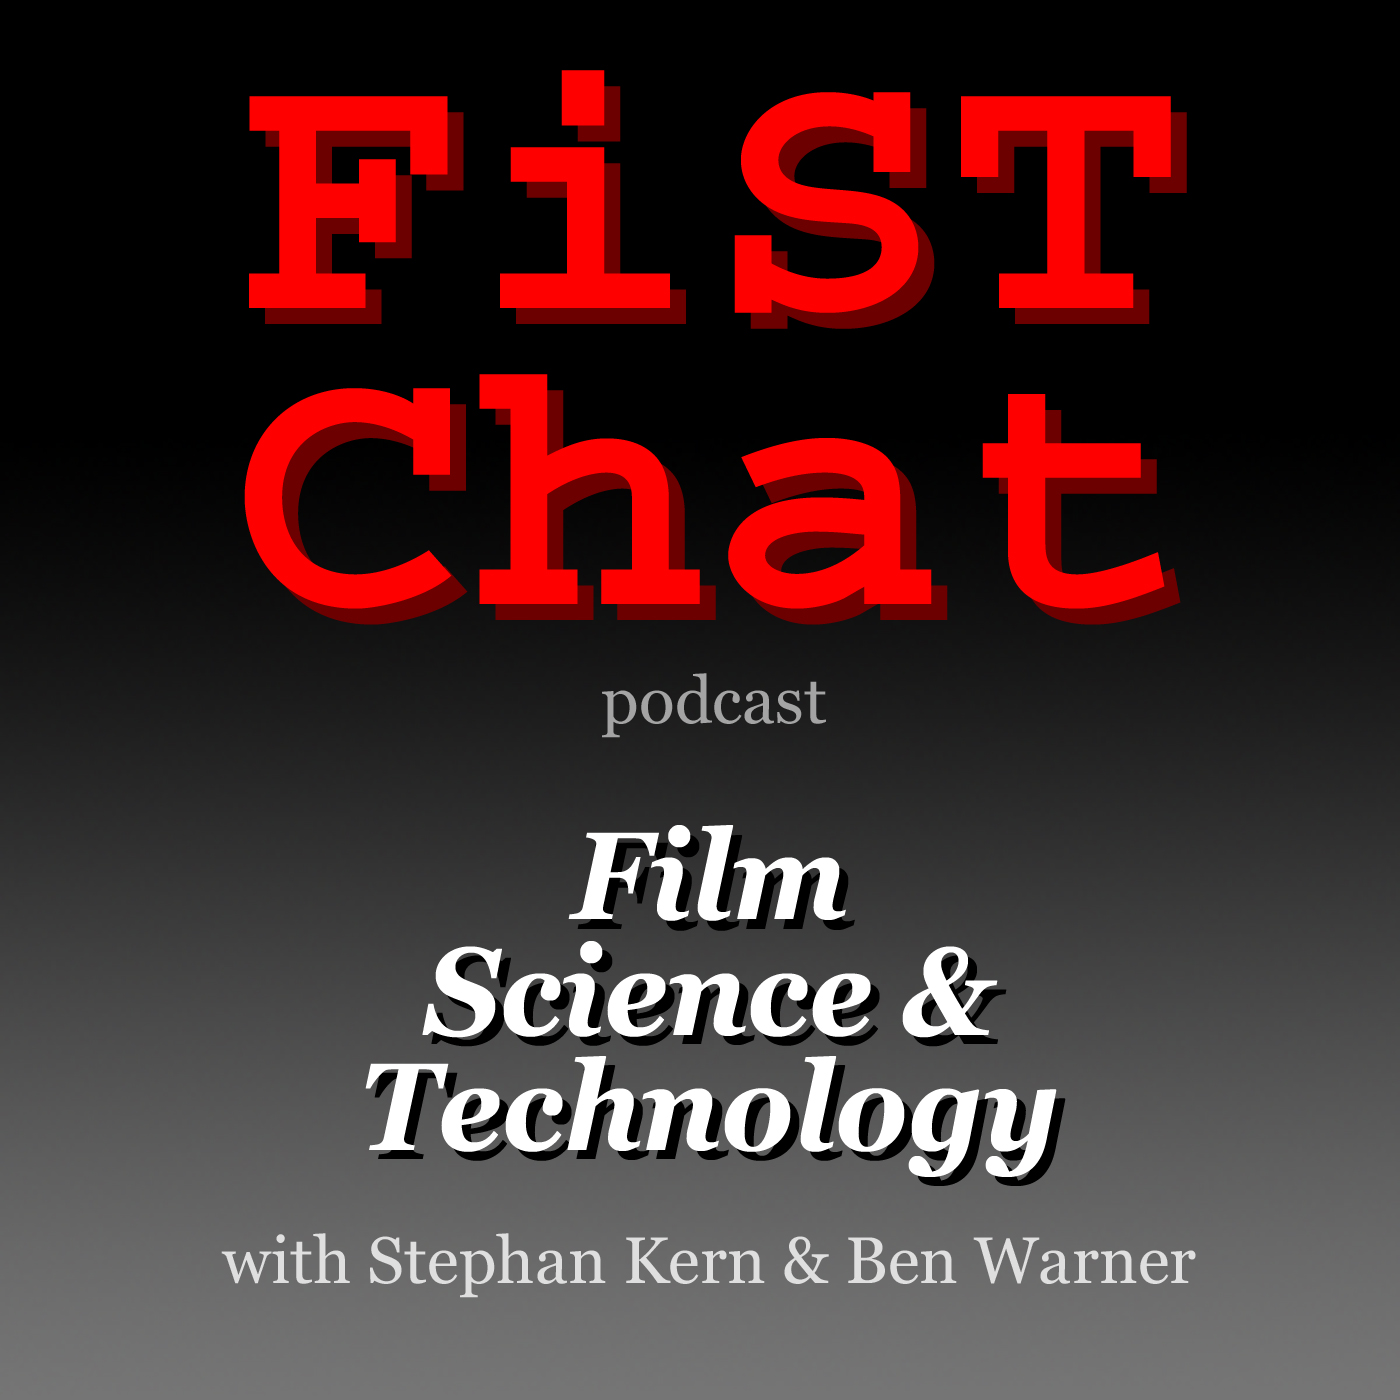 FiST Chat: Film, Science and Technology News